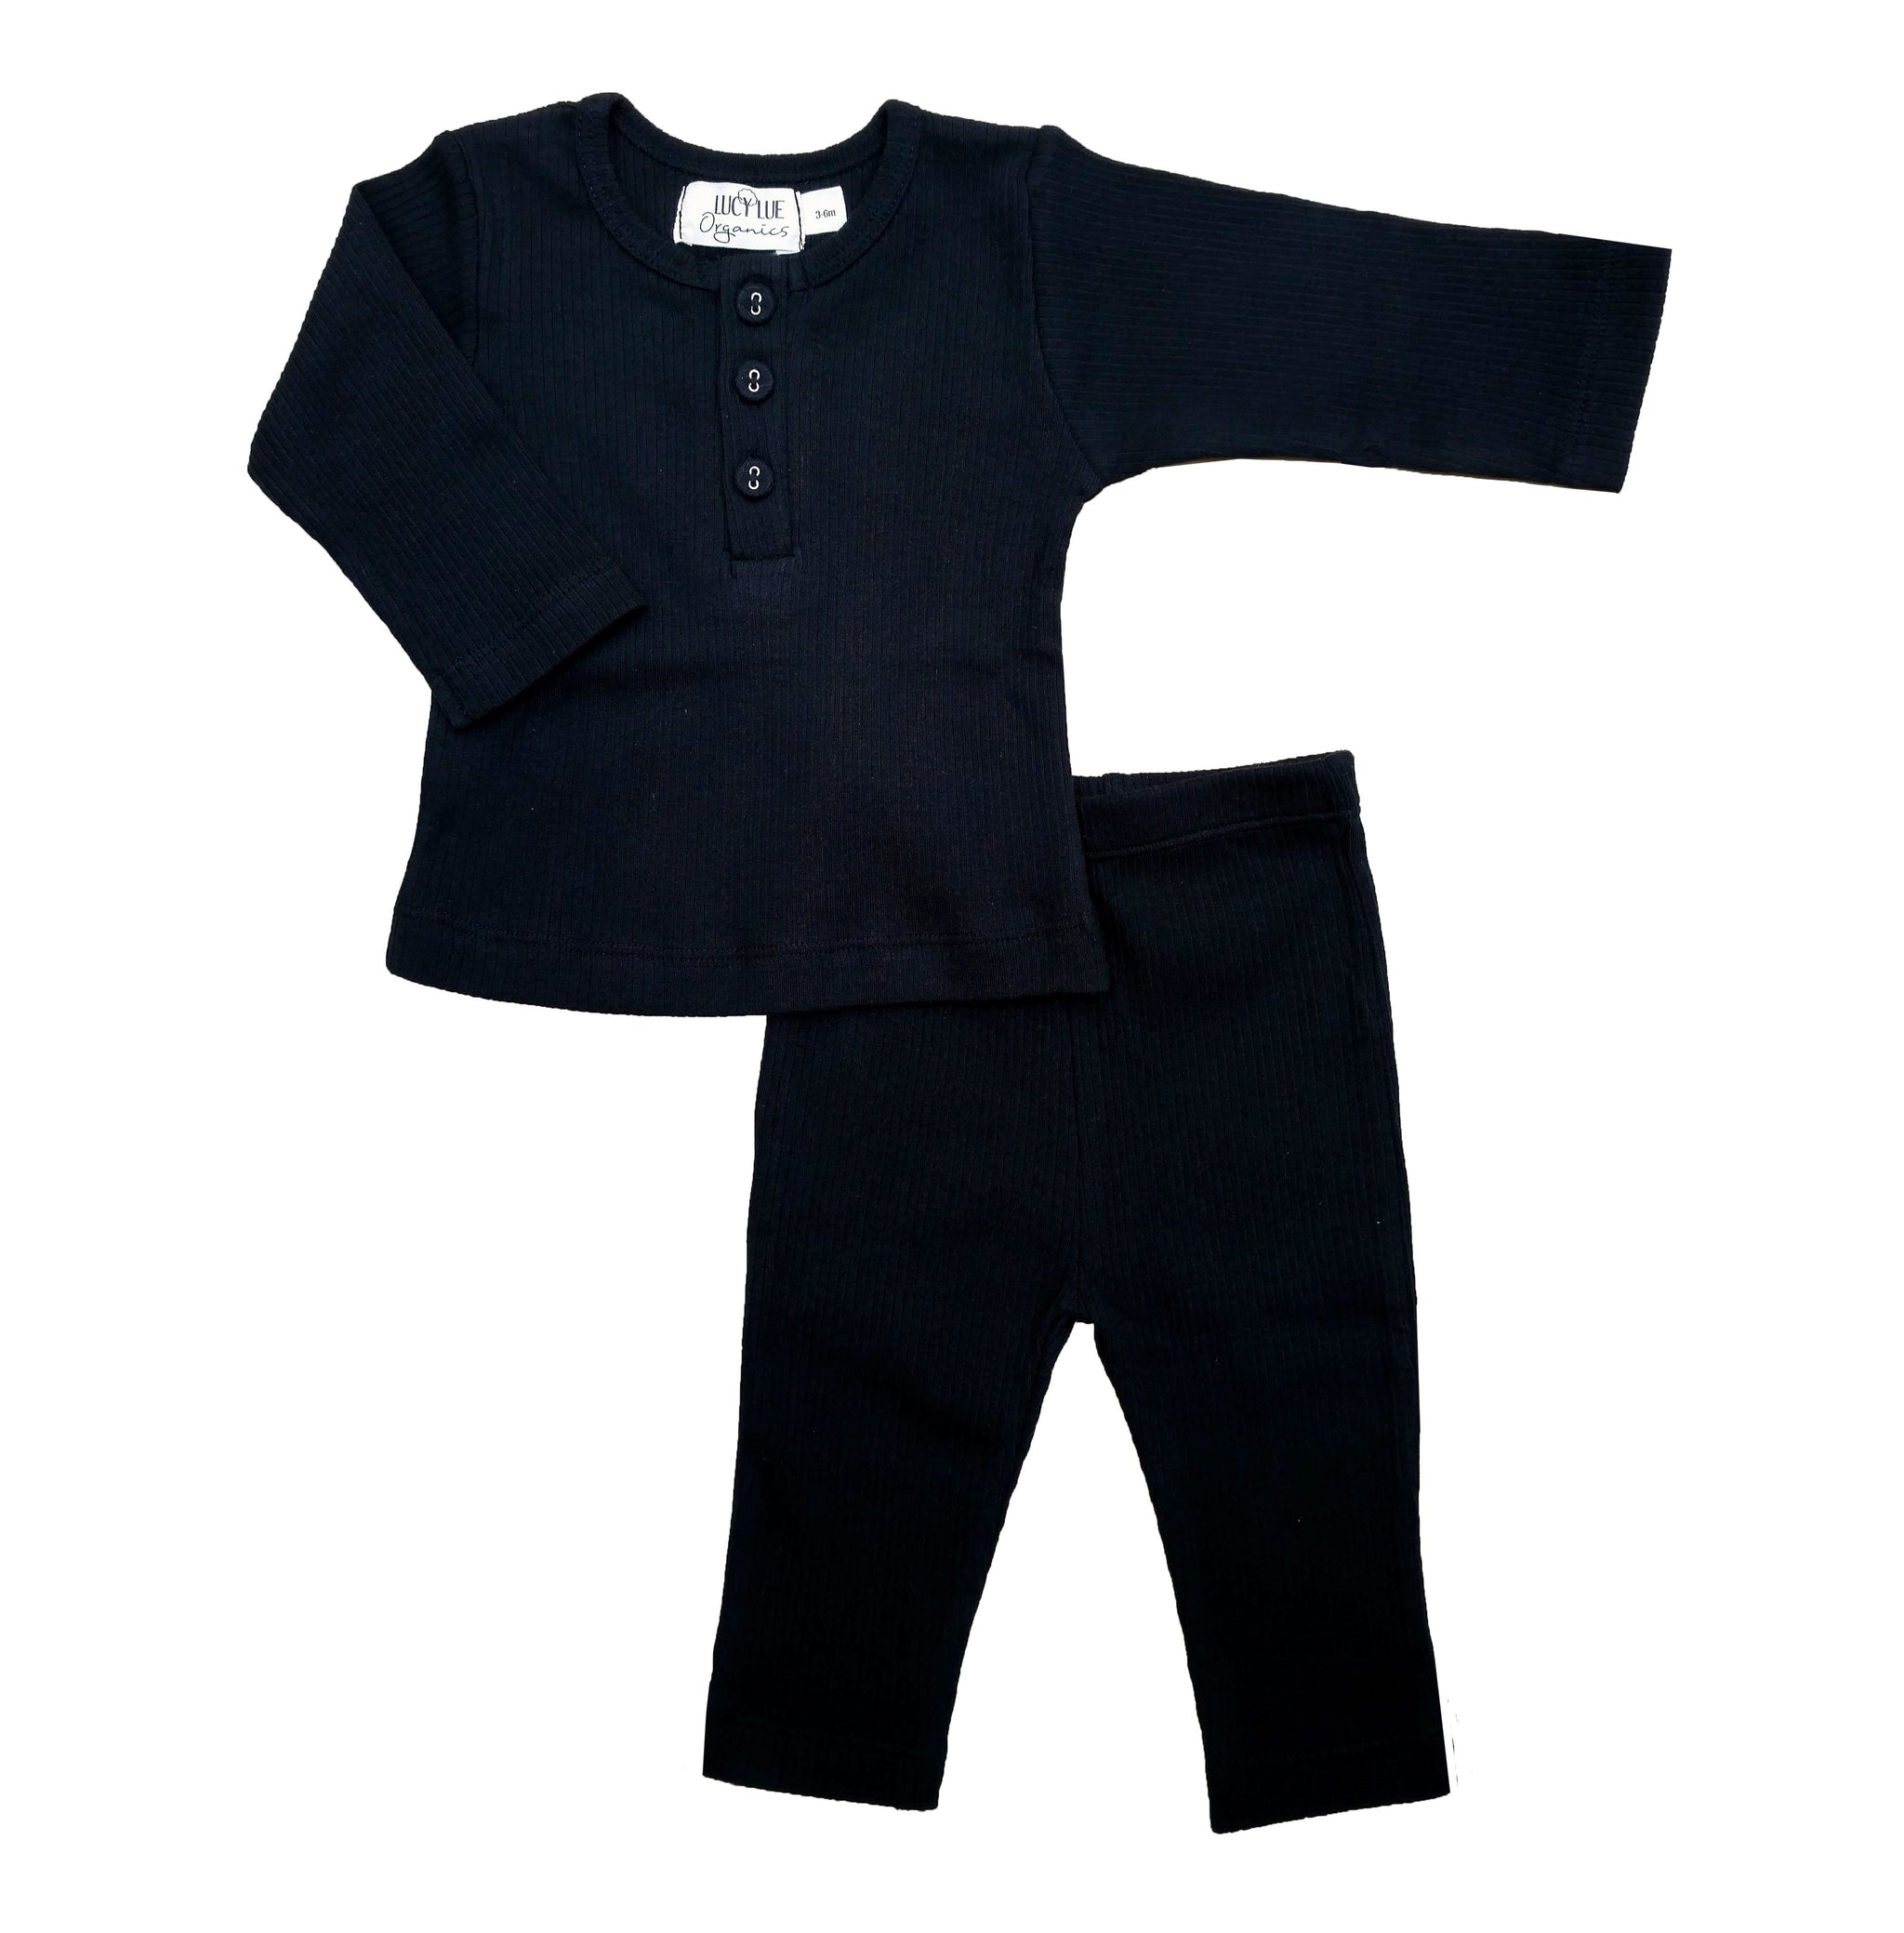 2 Piece set Lucy Lue Organics. Ribbed Henley shirt and pants set. Organic baby clothes, organic toddler clothes, organic cotton, organic baby, eco friendly clothing, fair trade clothing, baby clothes, modern organic baby clothes, baby boy clothes, baby girl clothes, unisex baby clothes. Summer baby styles.